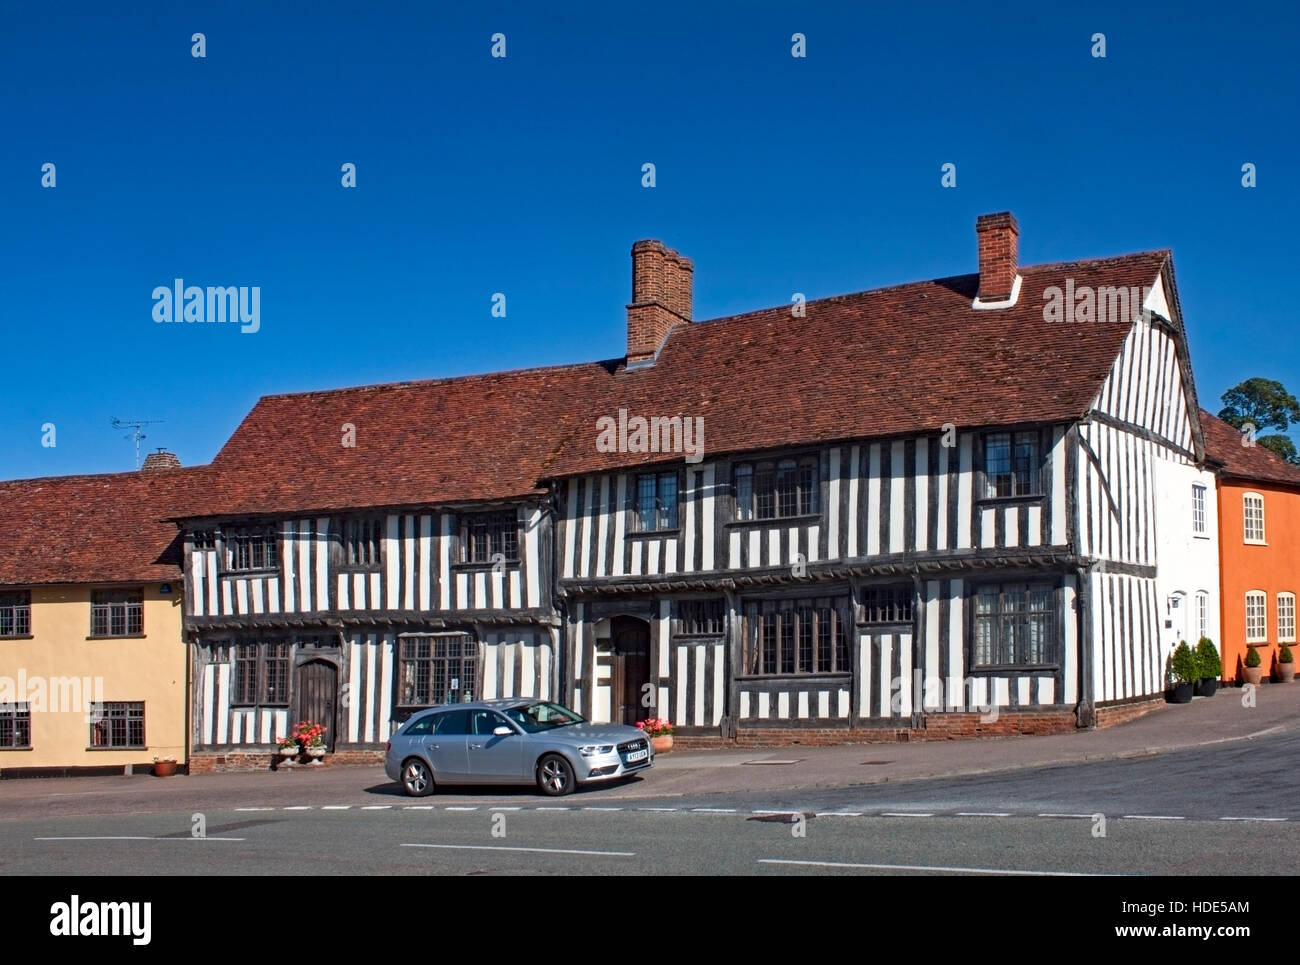 Classic black and white timber framed house in Lavenham, Suffolk, England - Stock Image